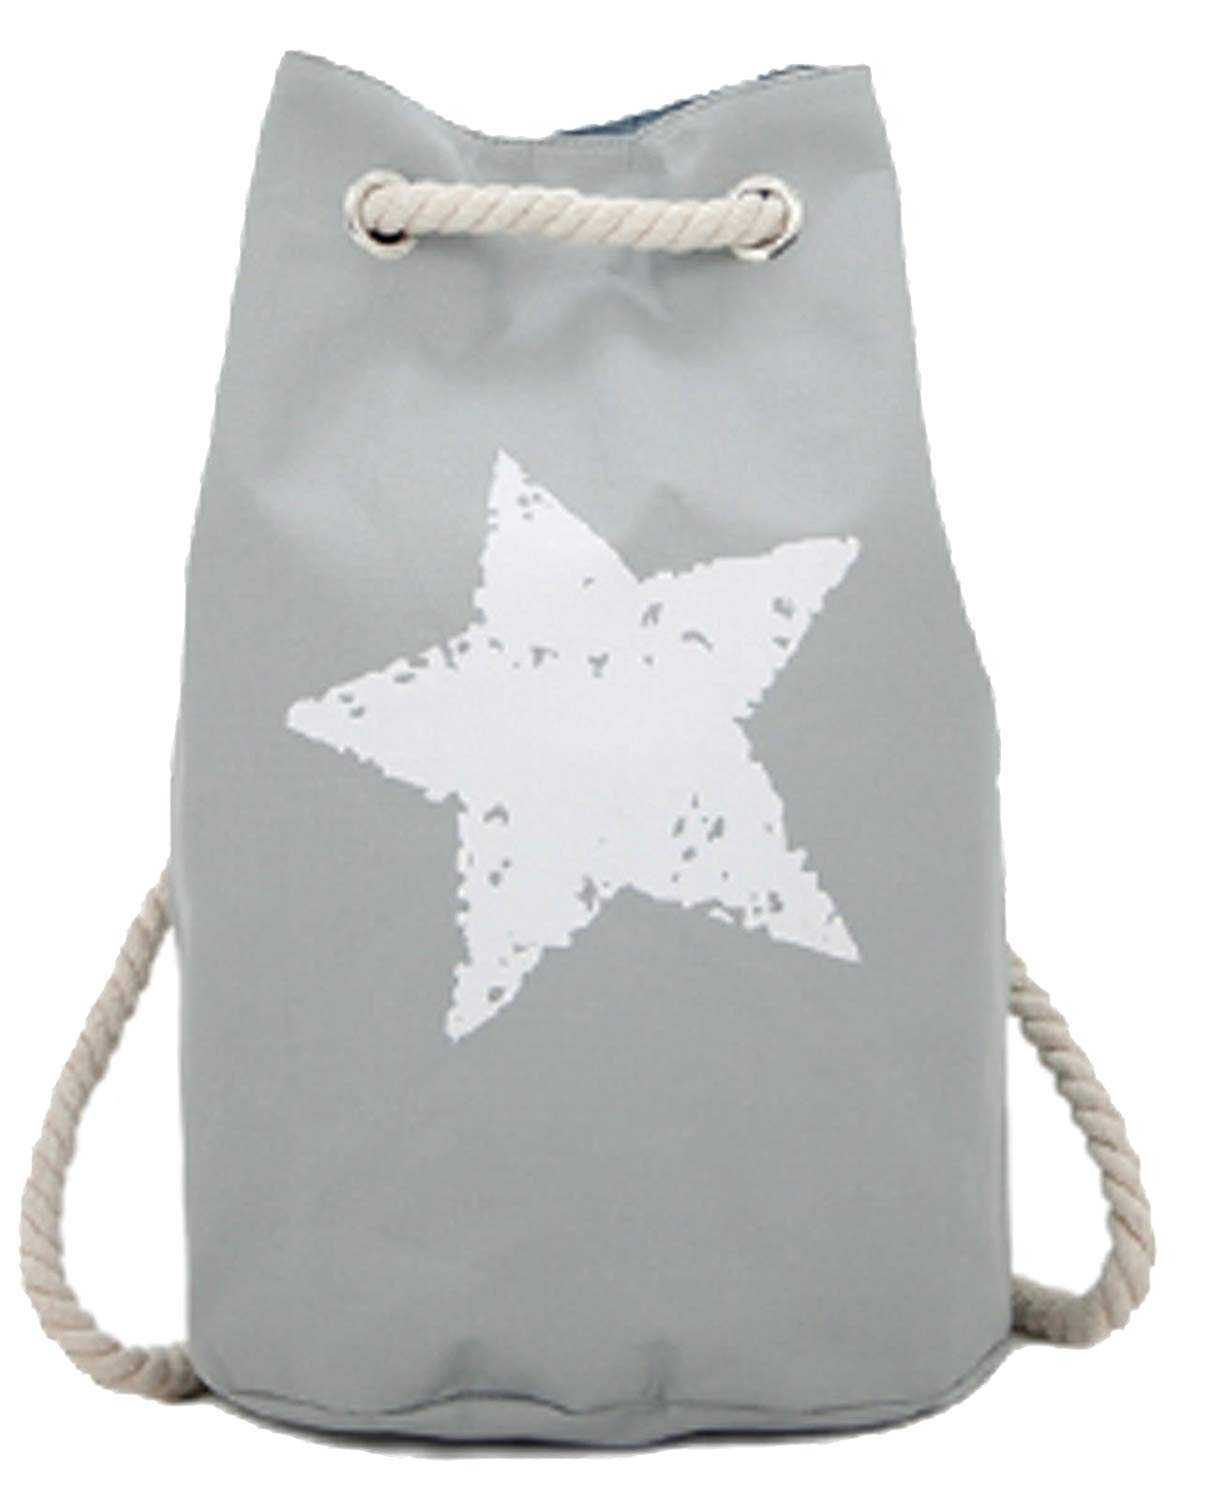 Duffel Bag Star grau Damen Backpack Beach Bag Strandtasche in 6 Trendigen Farben !!Top!!